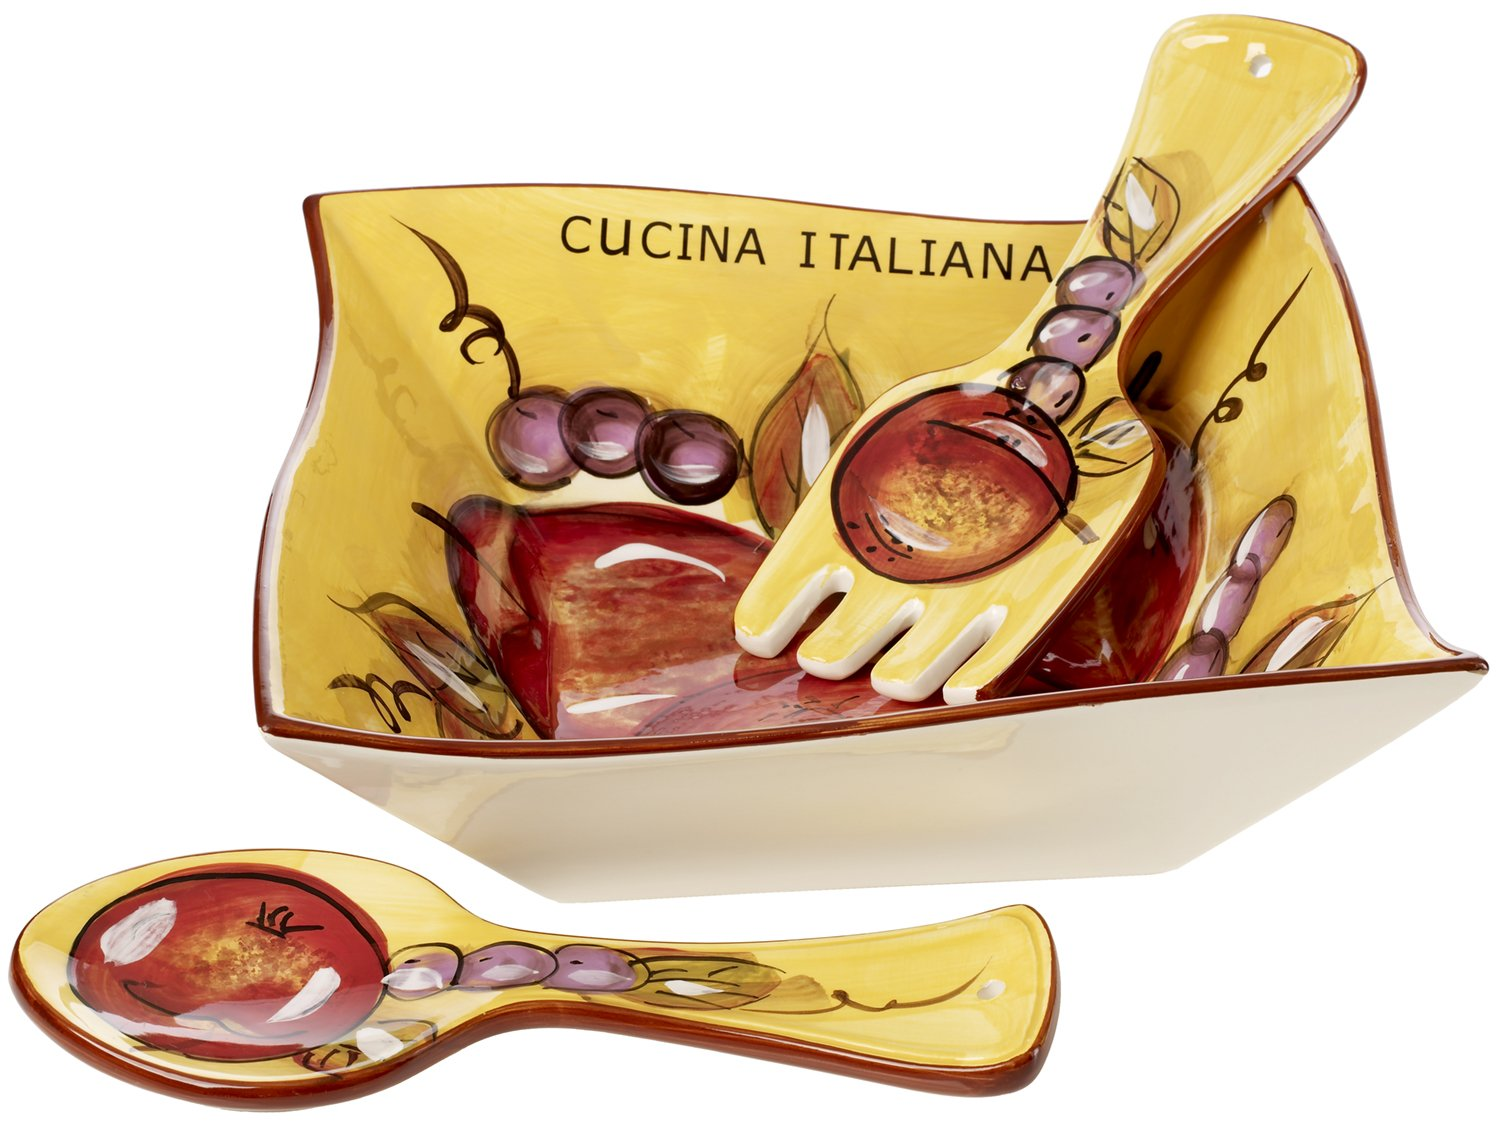 Cucina Italiana Ceramic Large Salad, Pasta Serving Bowl with Servers Square, 60 Oz,10 x 10 Inches, Yellow